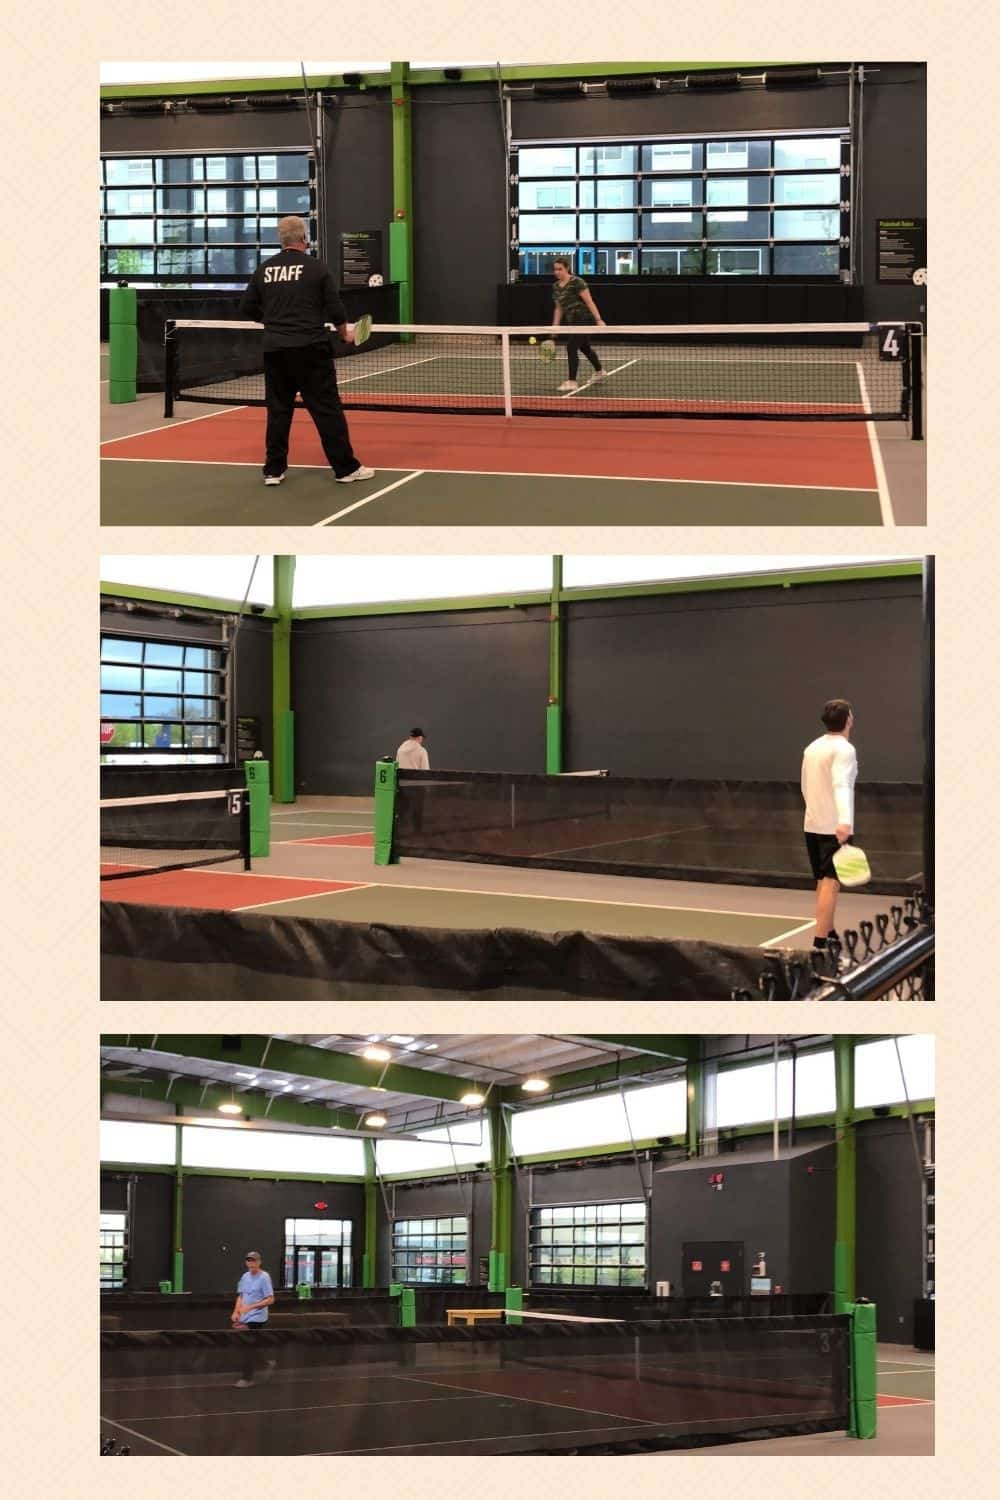 pickleball courts where you will use a beginner pickleball paddle